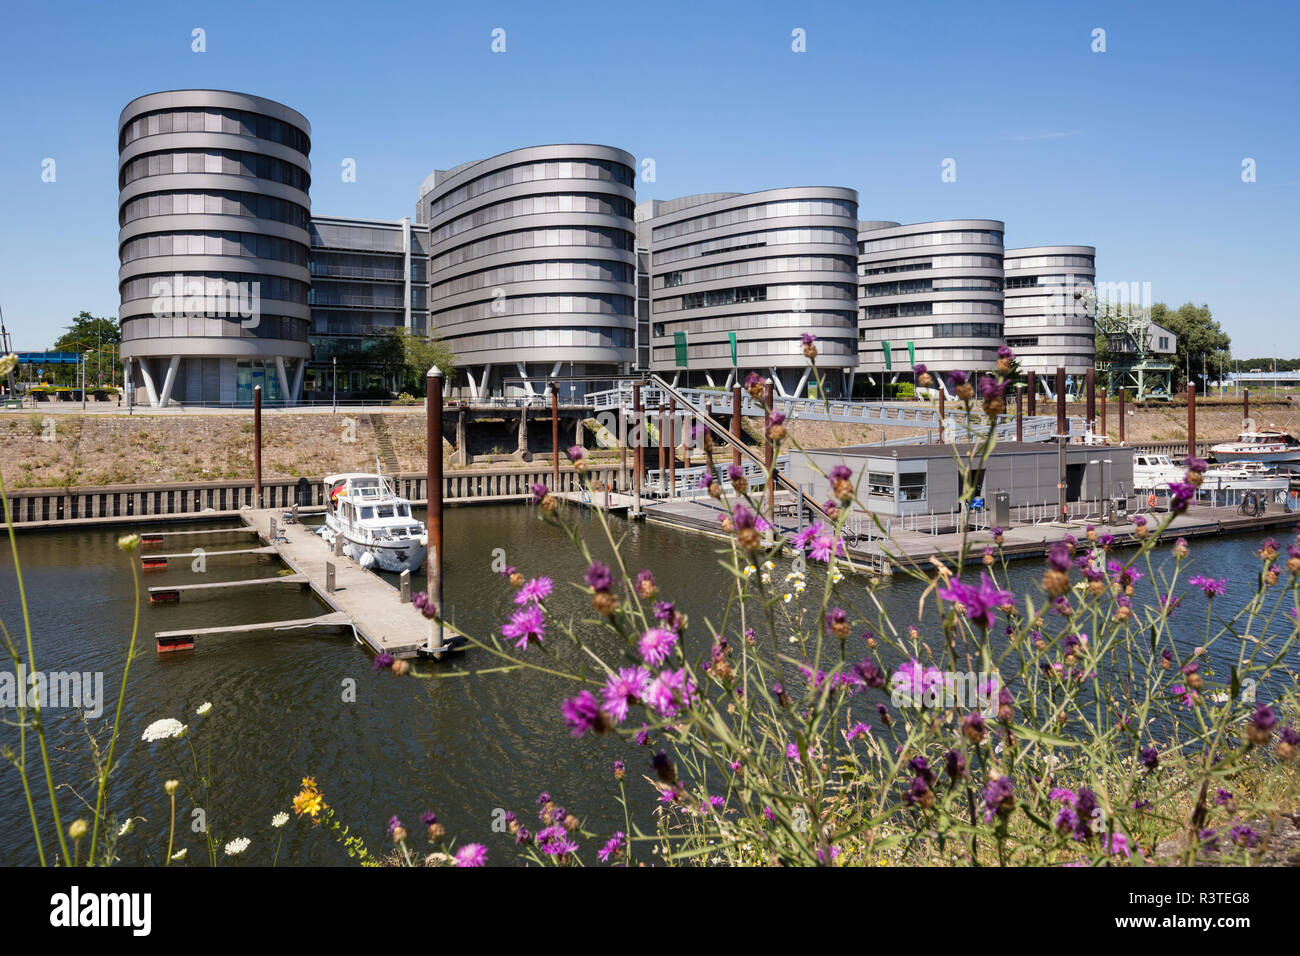 Germany, Duisburg, view to office buildings 'Five Boats' at inner harbour - Stock Image